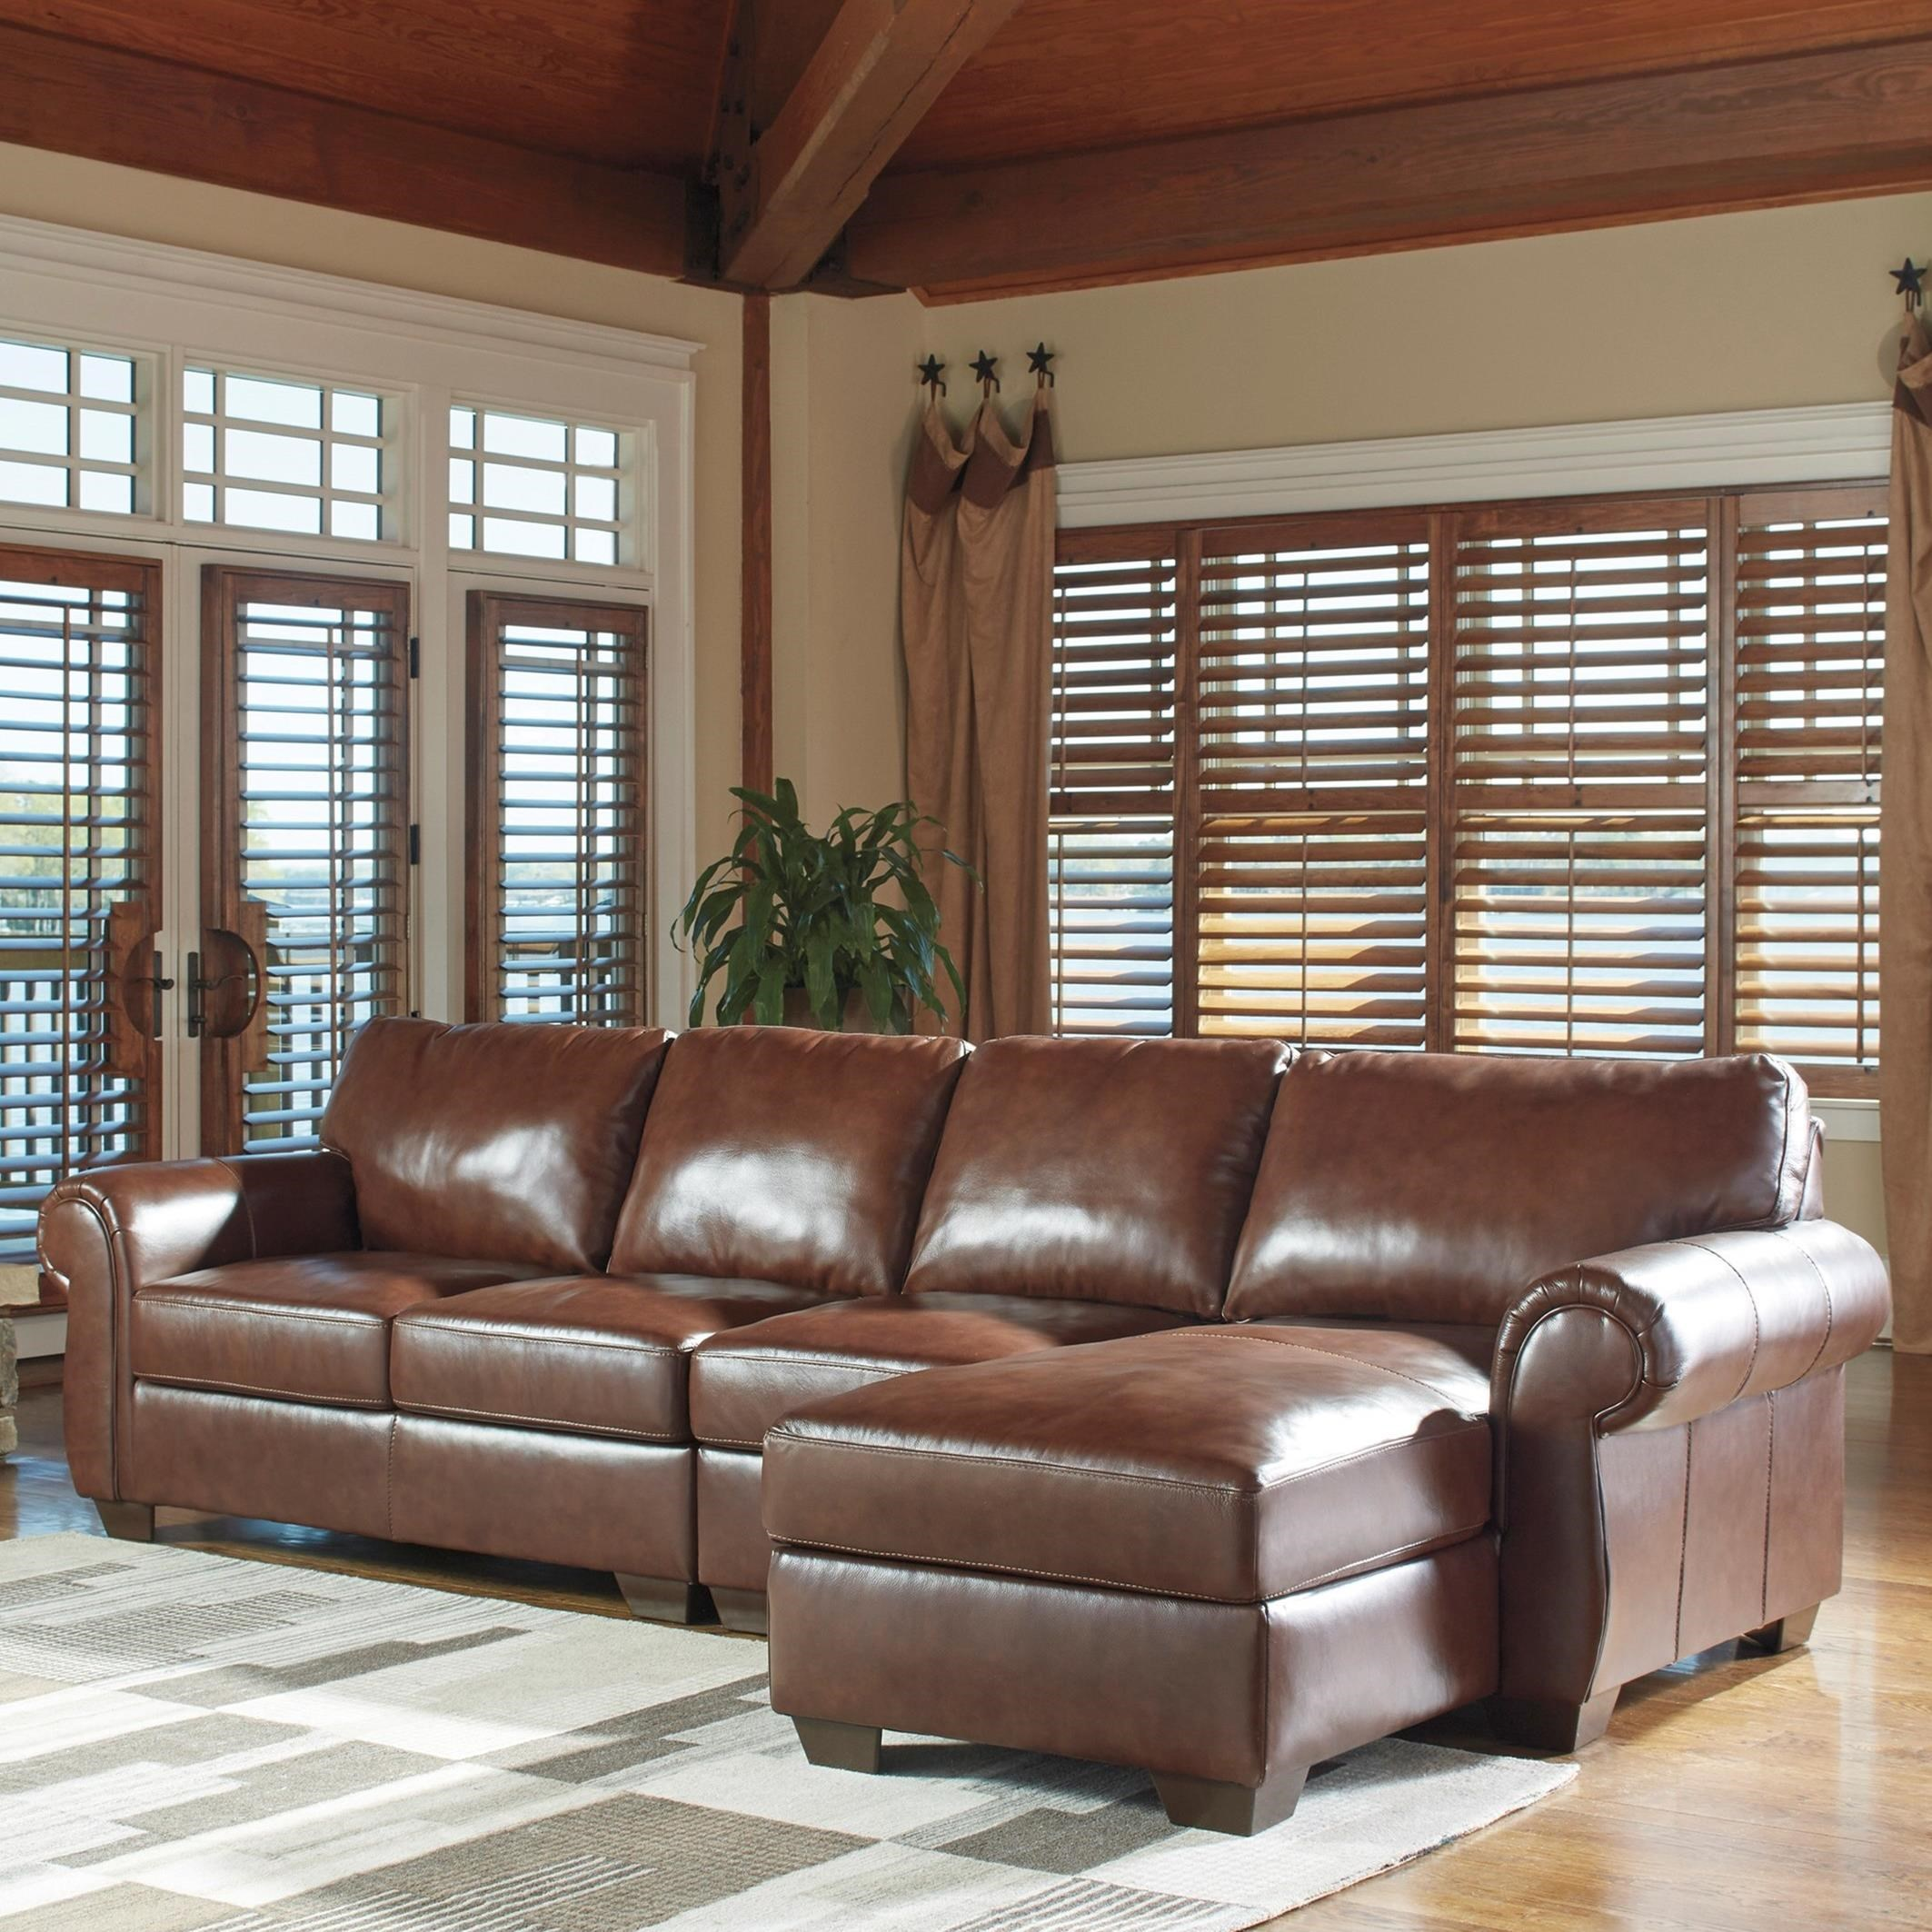 Signature Design By Ashley Lugoro Leather Match 3 Piece Sectional With Right Chaise Value City